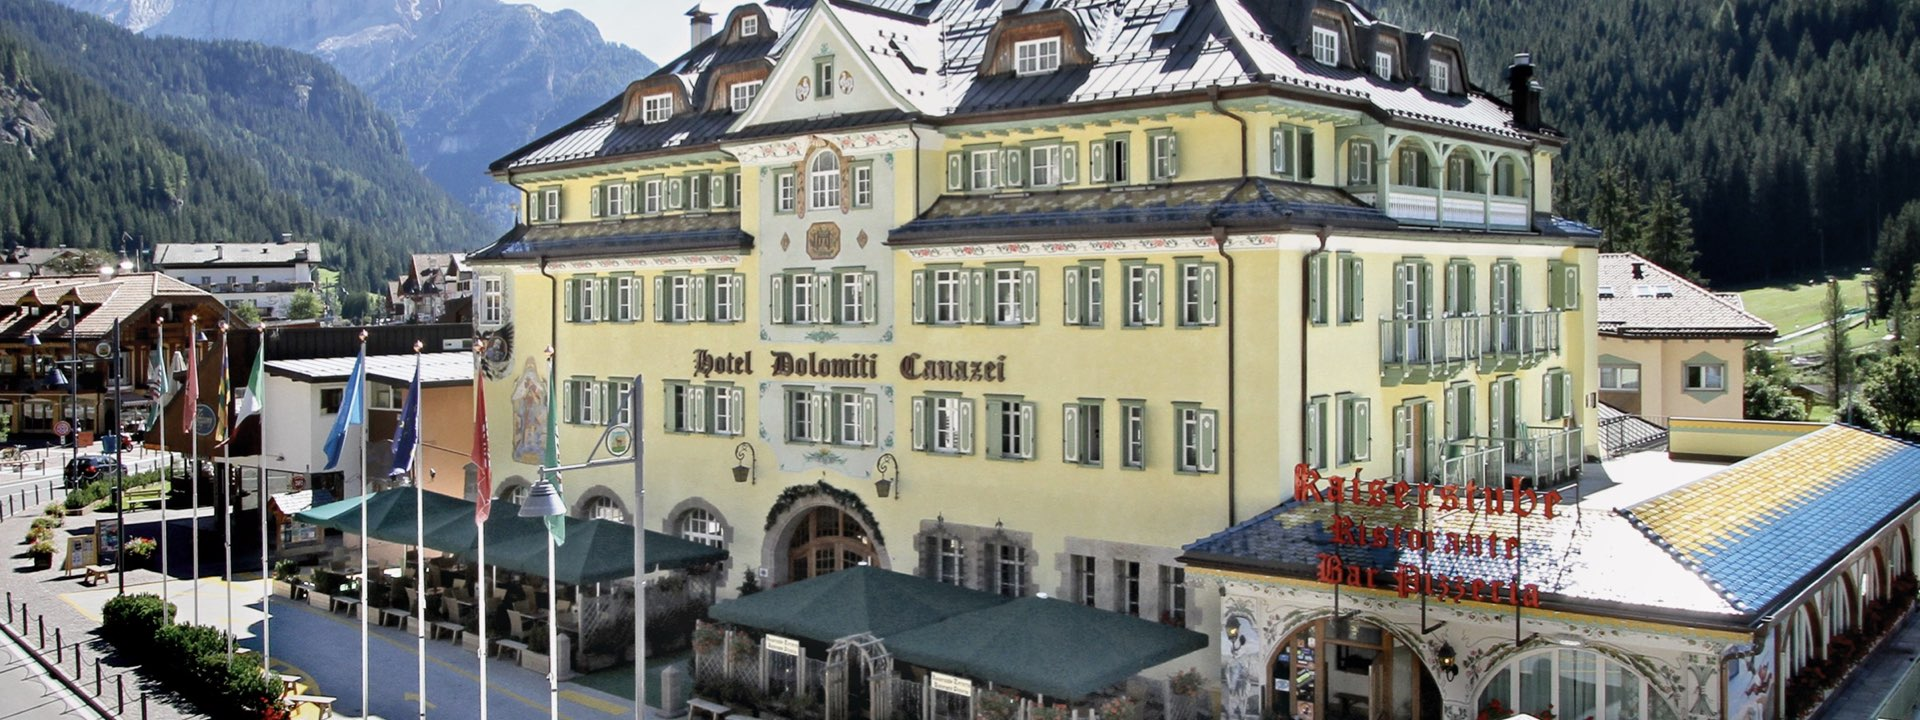 Canazei: Hotel Dolomiti (HOTELBUS) – halvpension